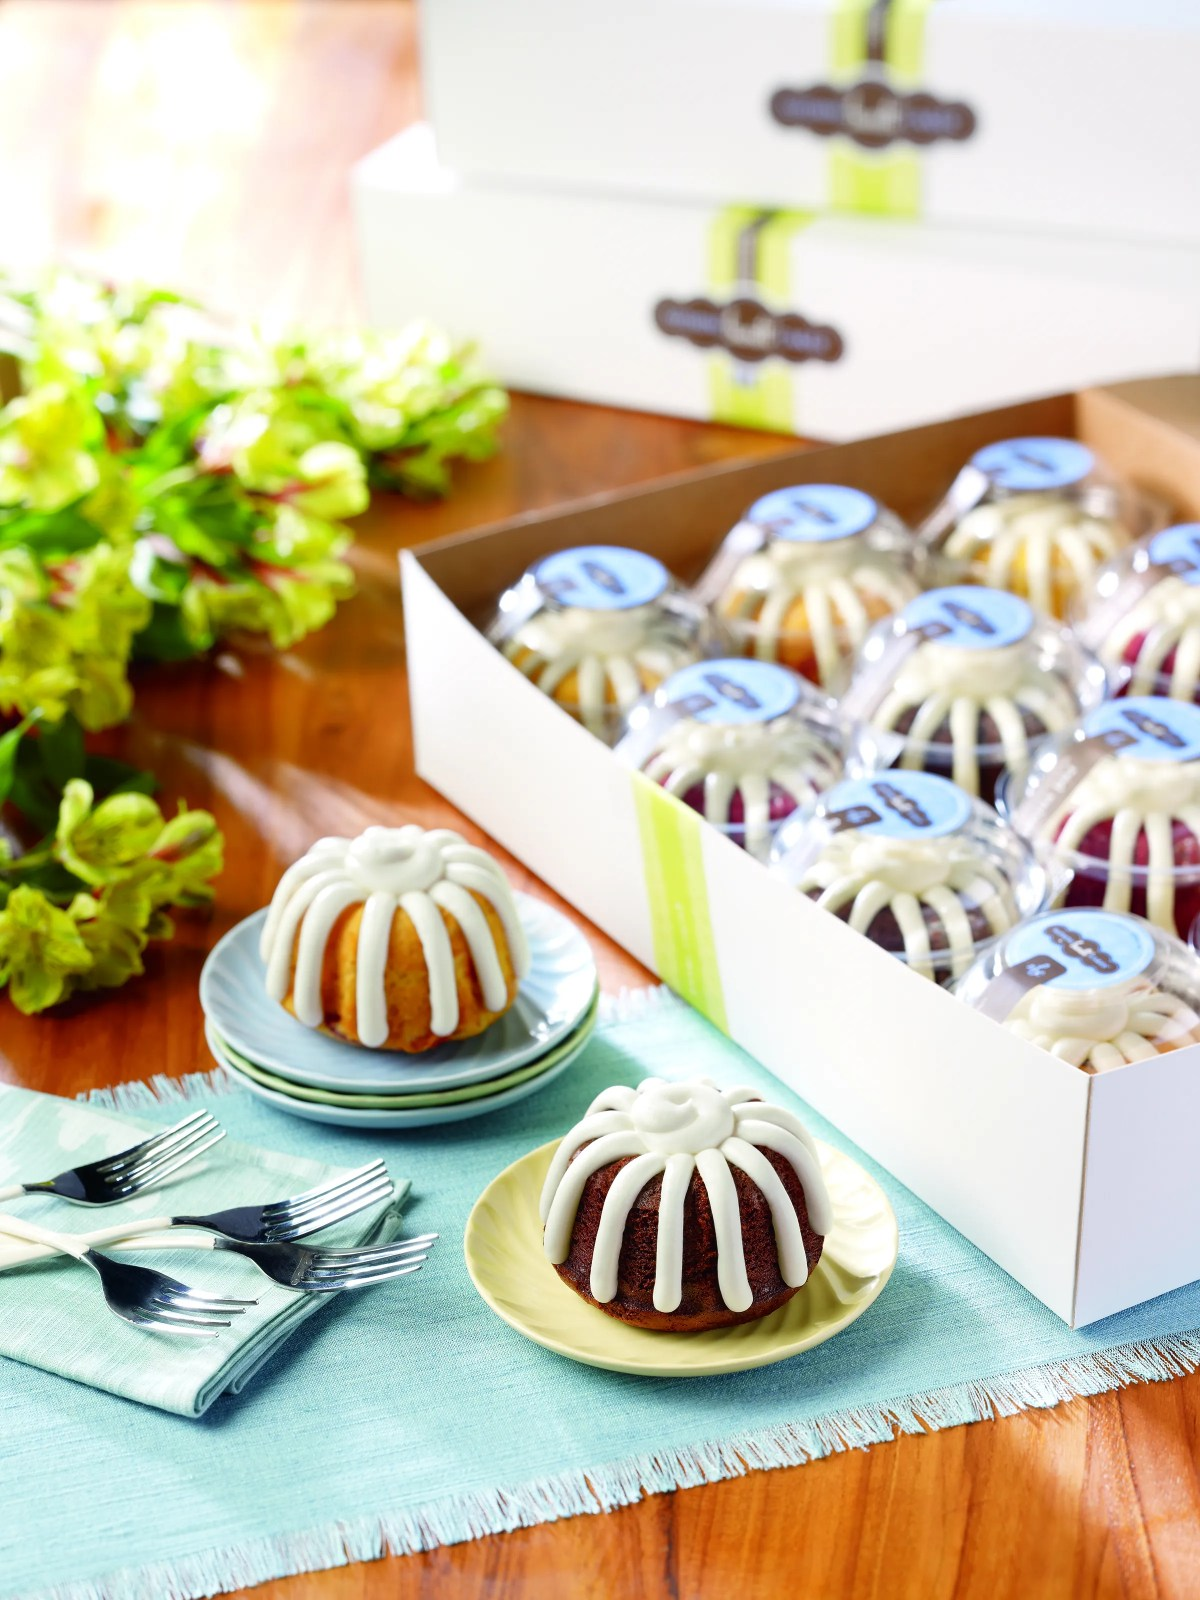 There are 10 Nothing Bundt Cakes flavors, and you can get a dozen for around $45.